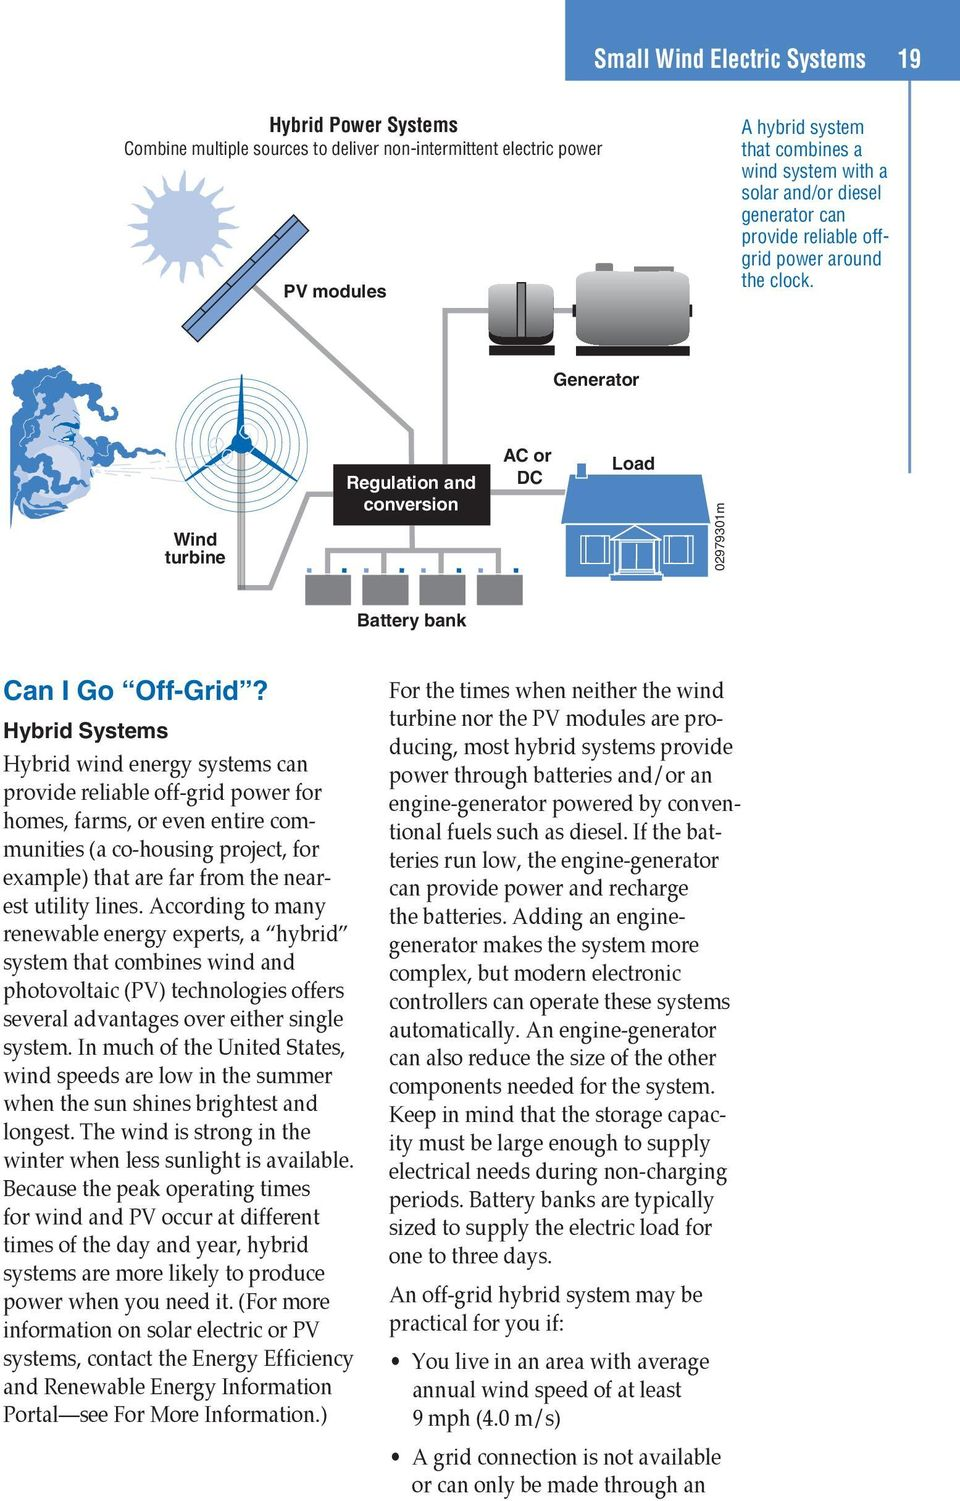 Hybrid Systems Hybrid wind energy systems can provide reliable off-grid power for homes, farms, or even entire communities (a co-housing project, for example) that are far from the nearest utility